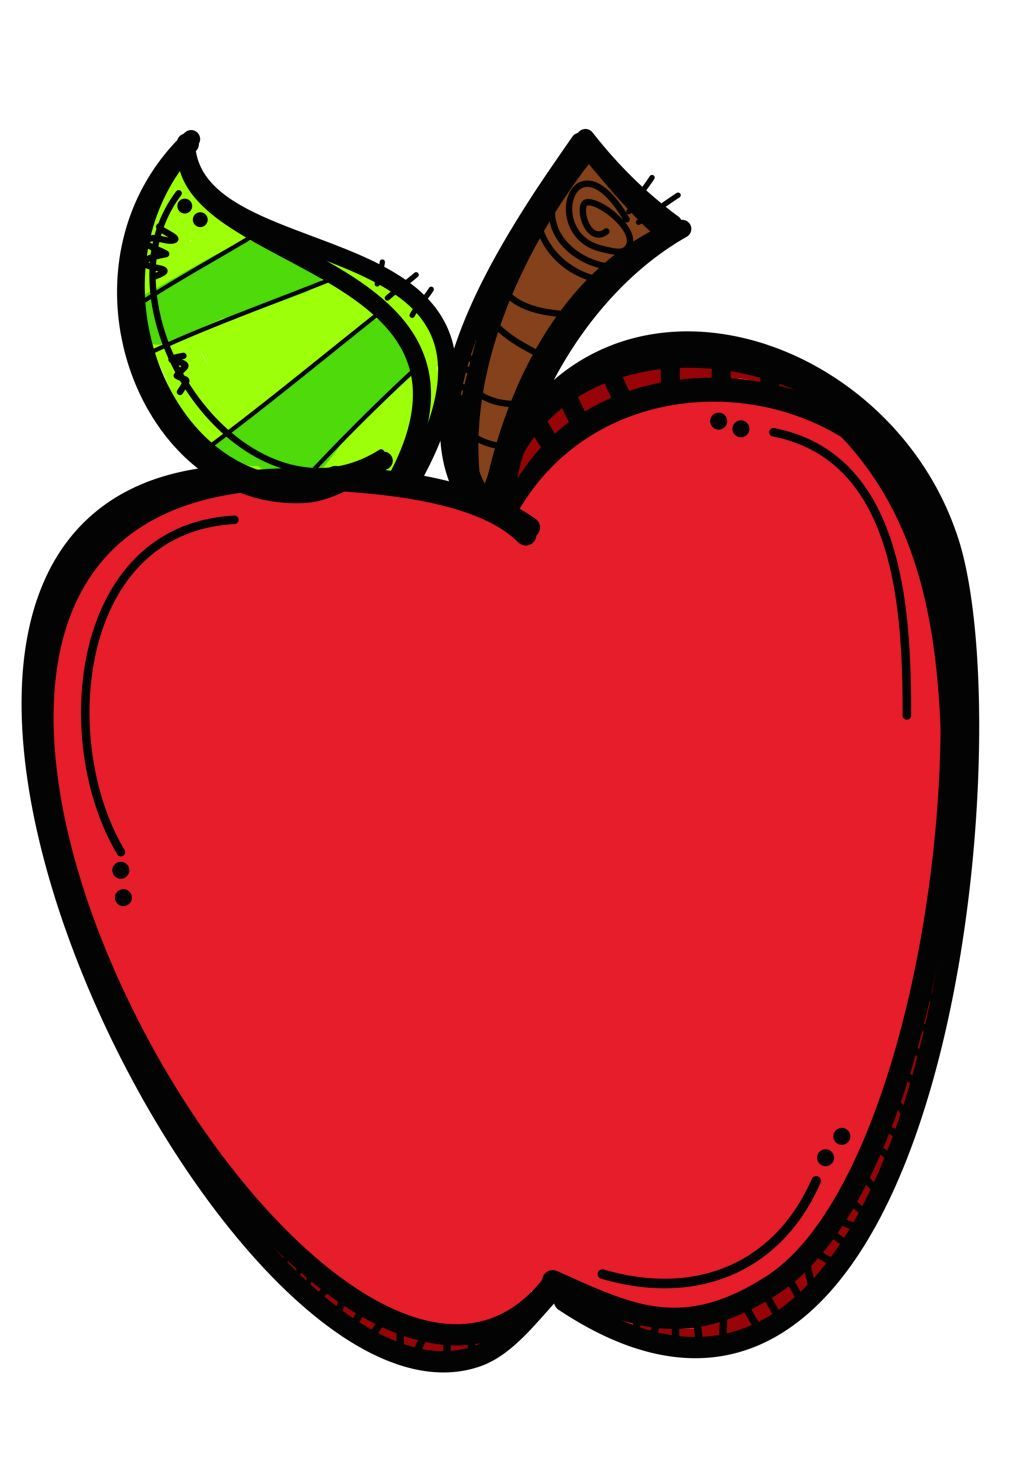 Apples‿ ⁀ | FᎧᖇᏰᎥᗪᗪᏋղ ƒᖇᘎᎥե | Apple clip art, School ...